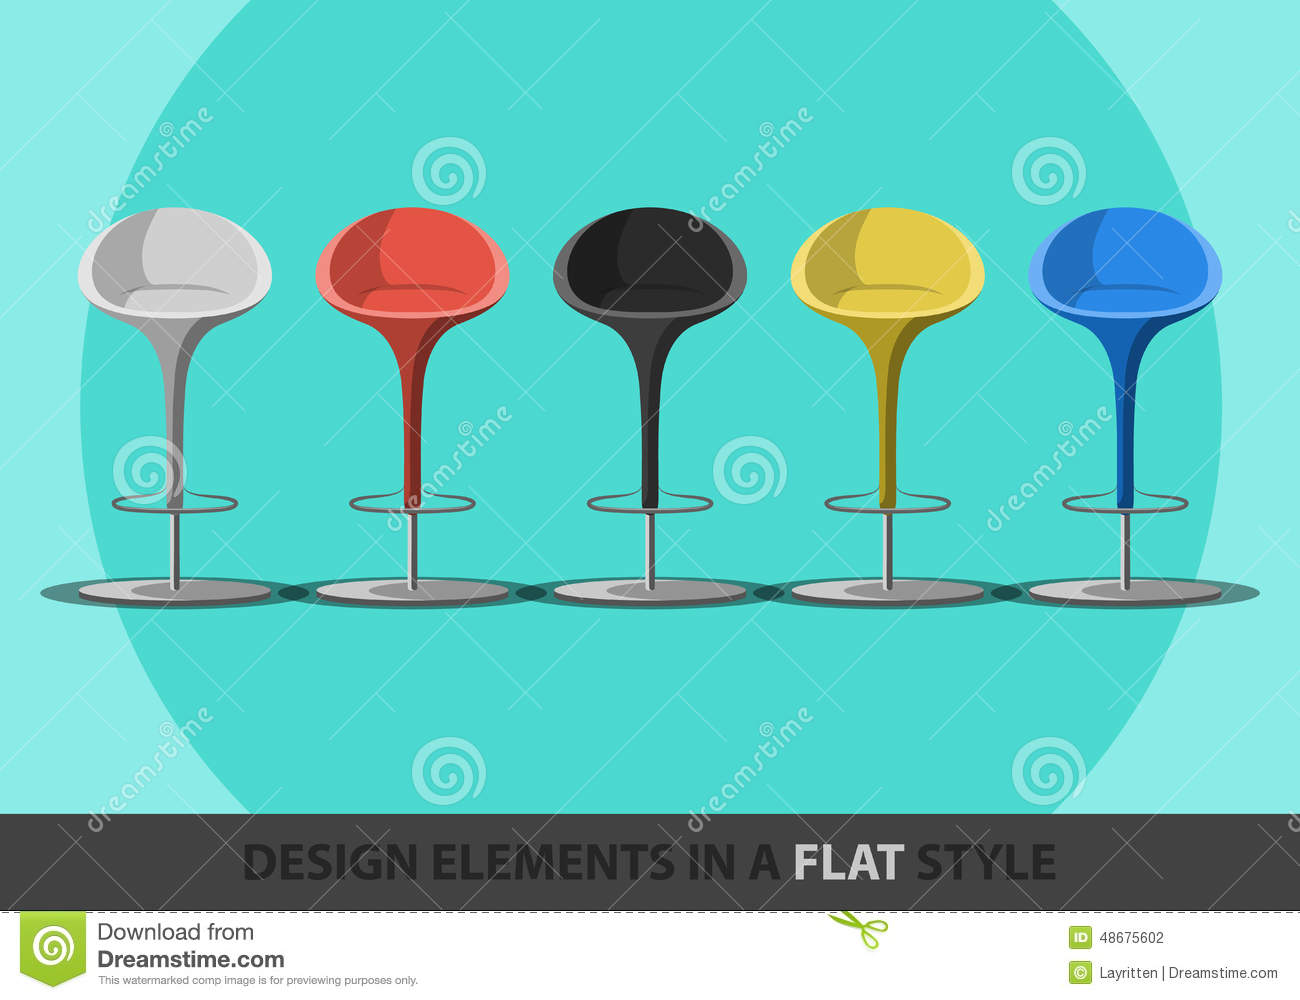 Set of colored stools in a flat style.